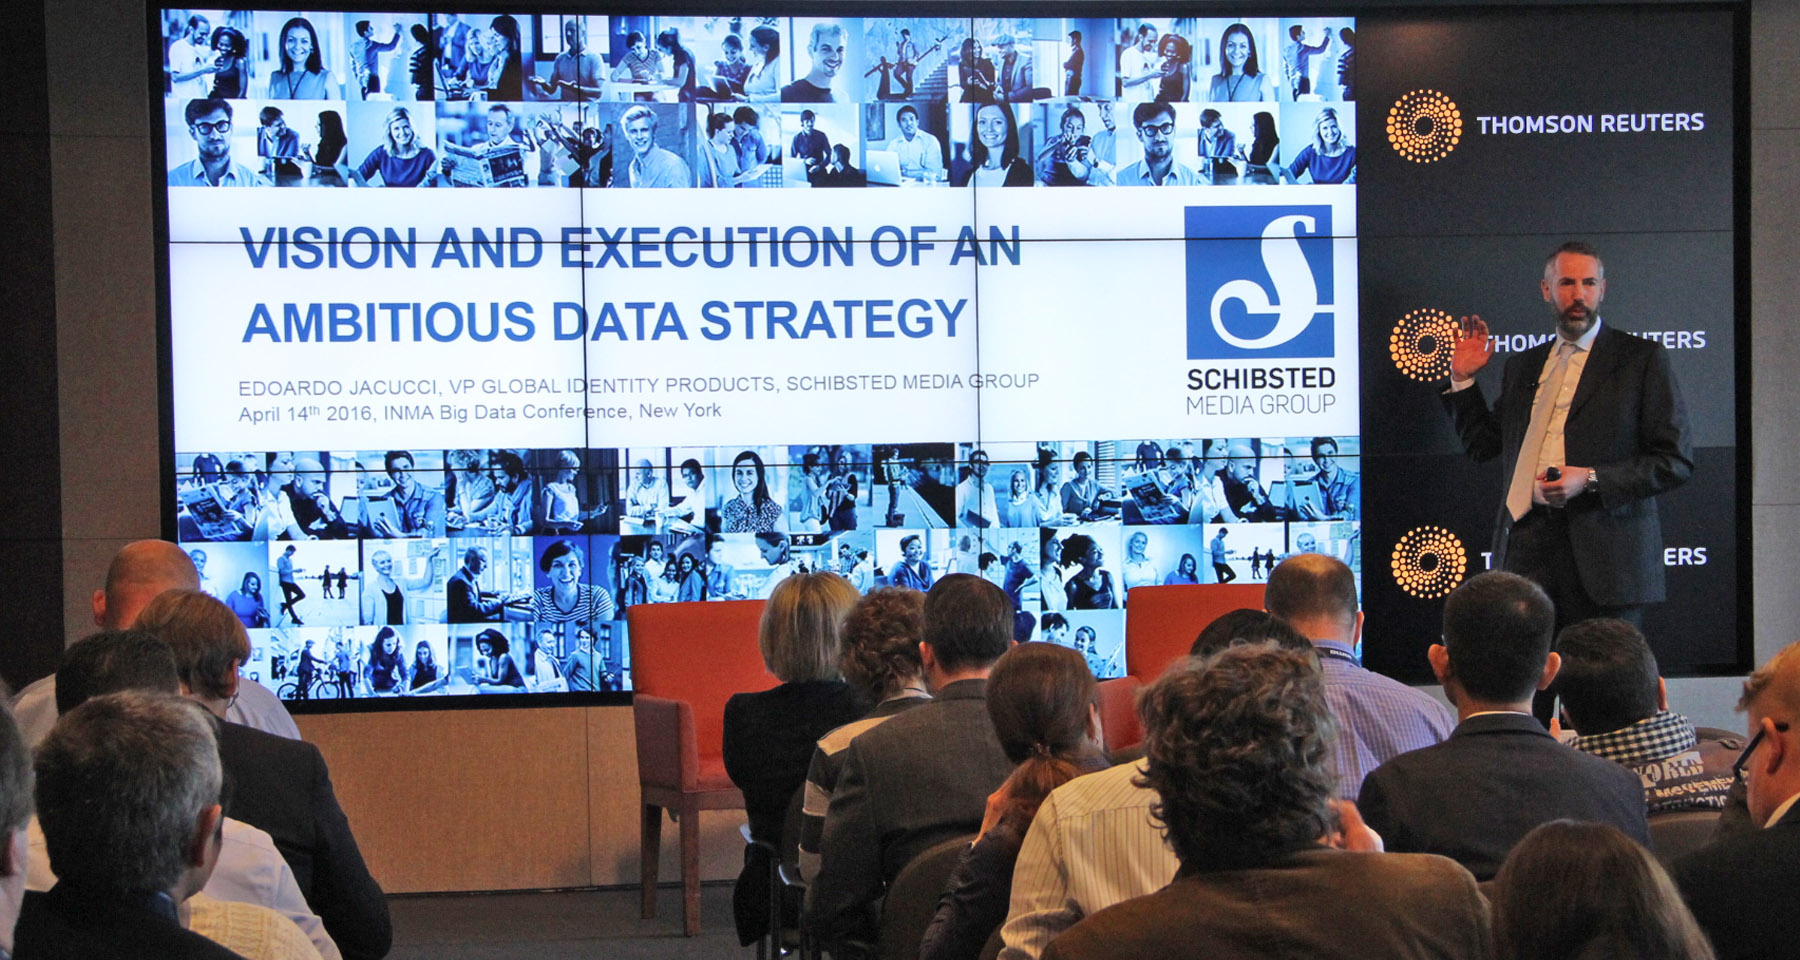 Schibsted shares 3 priorities of its data strategy